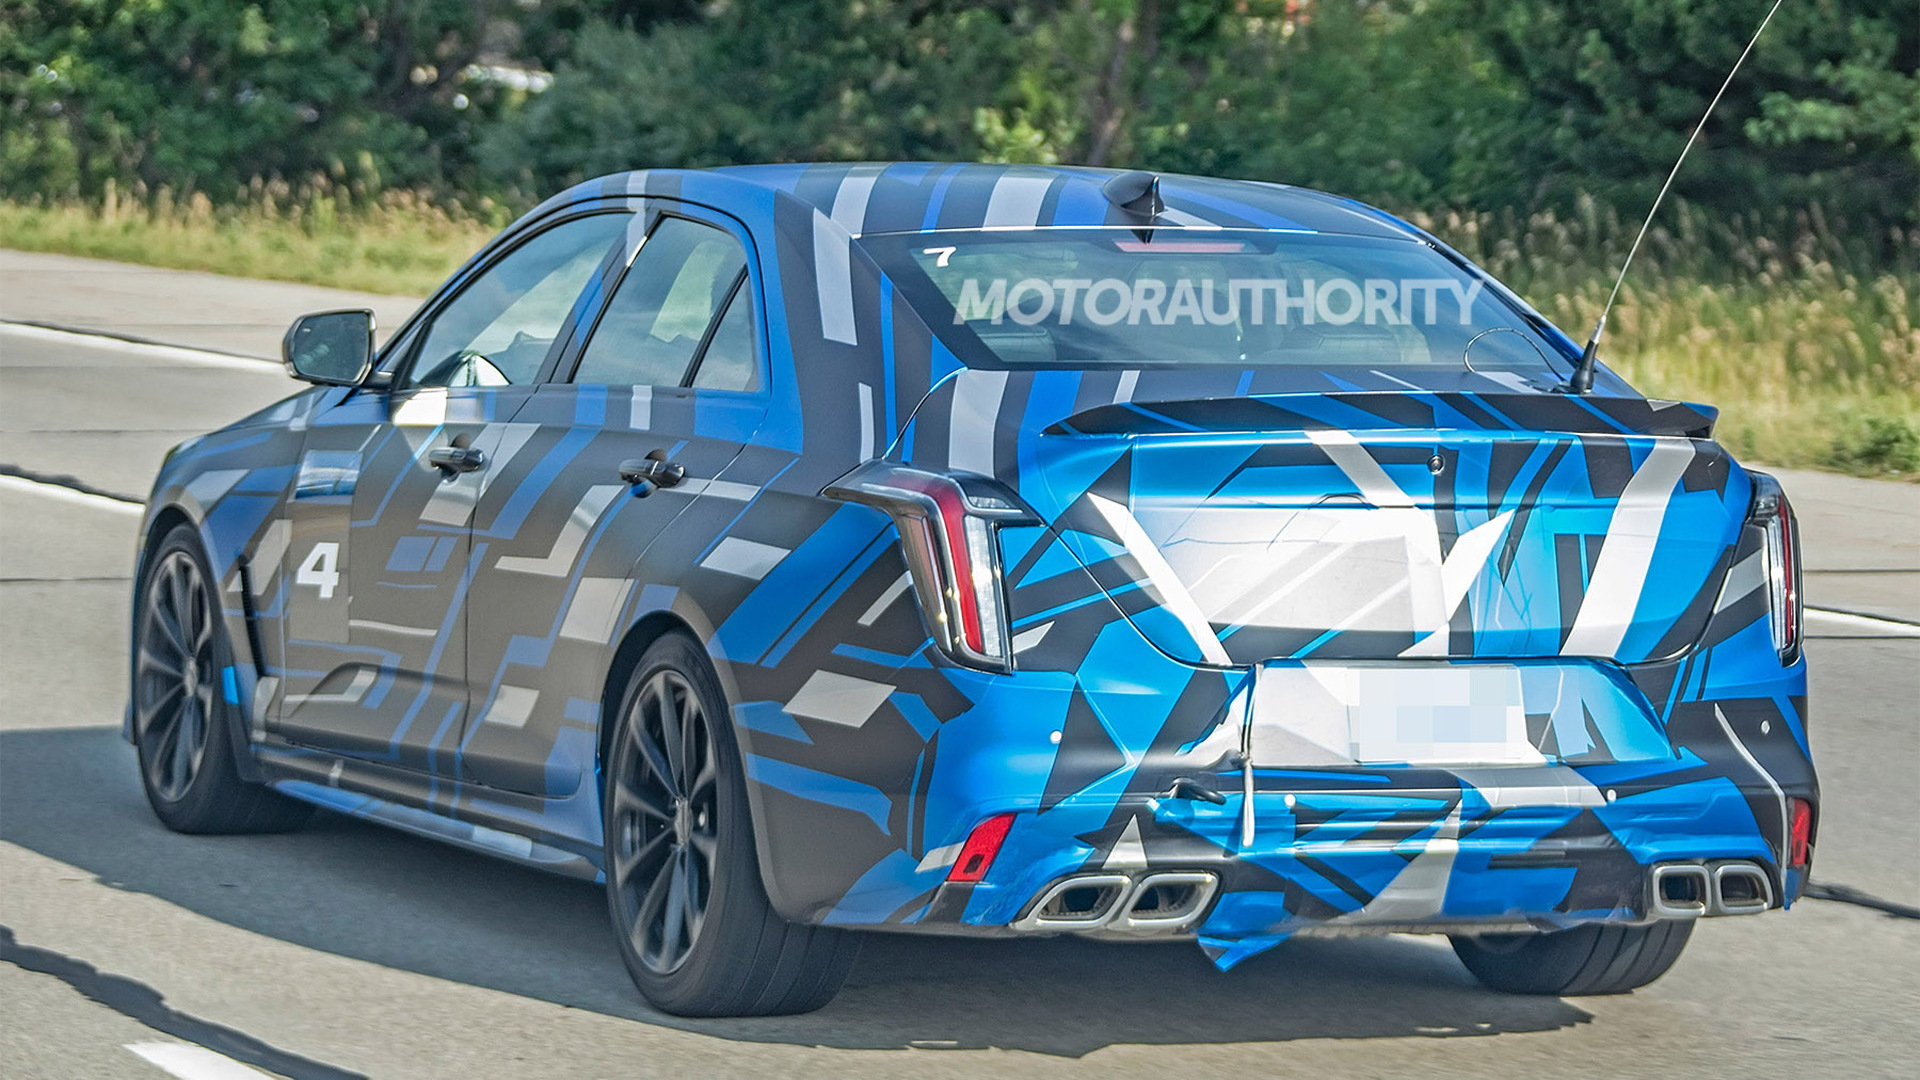 2020 Cadillac CT4-V Blackwing spy shots - Image via S. Baldauf/SB-Medien